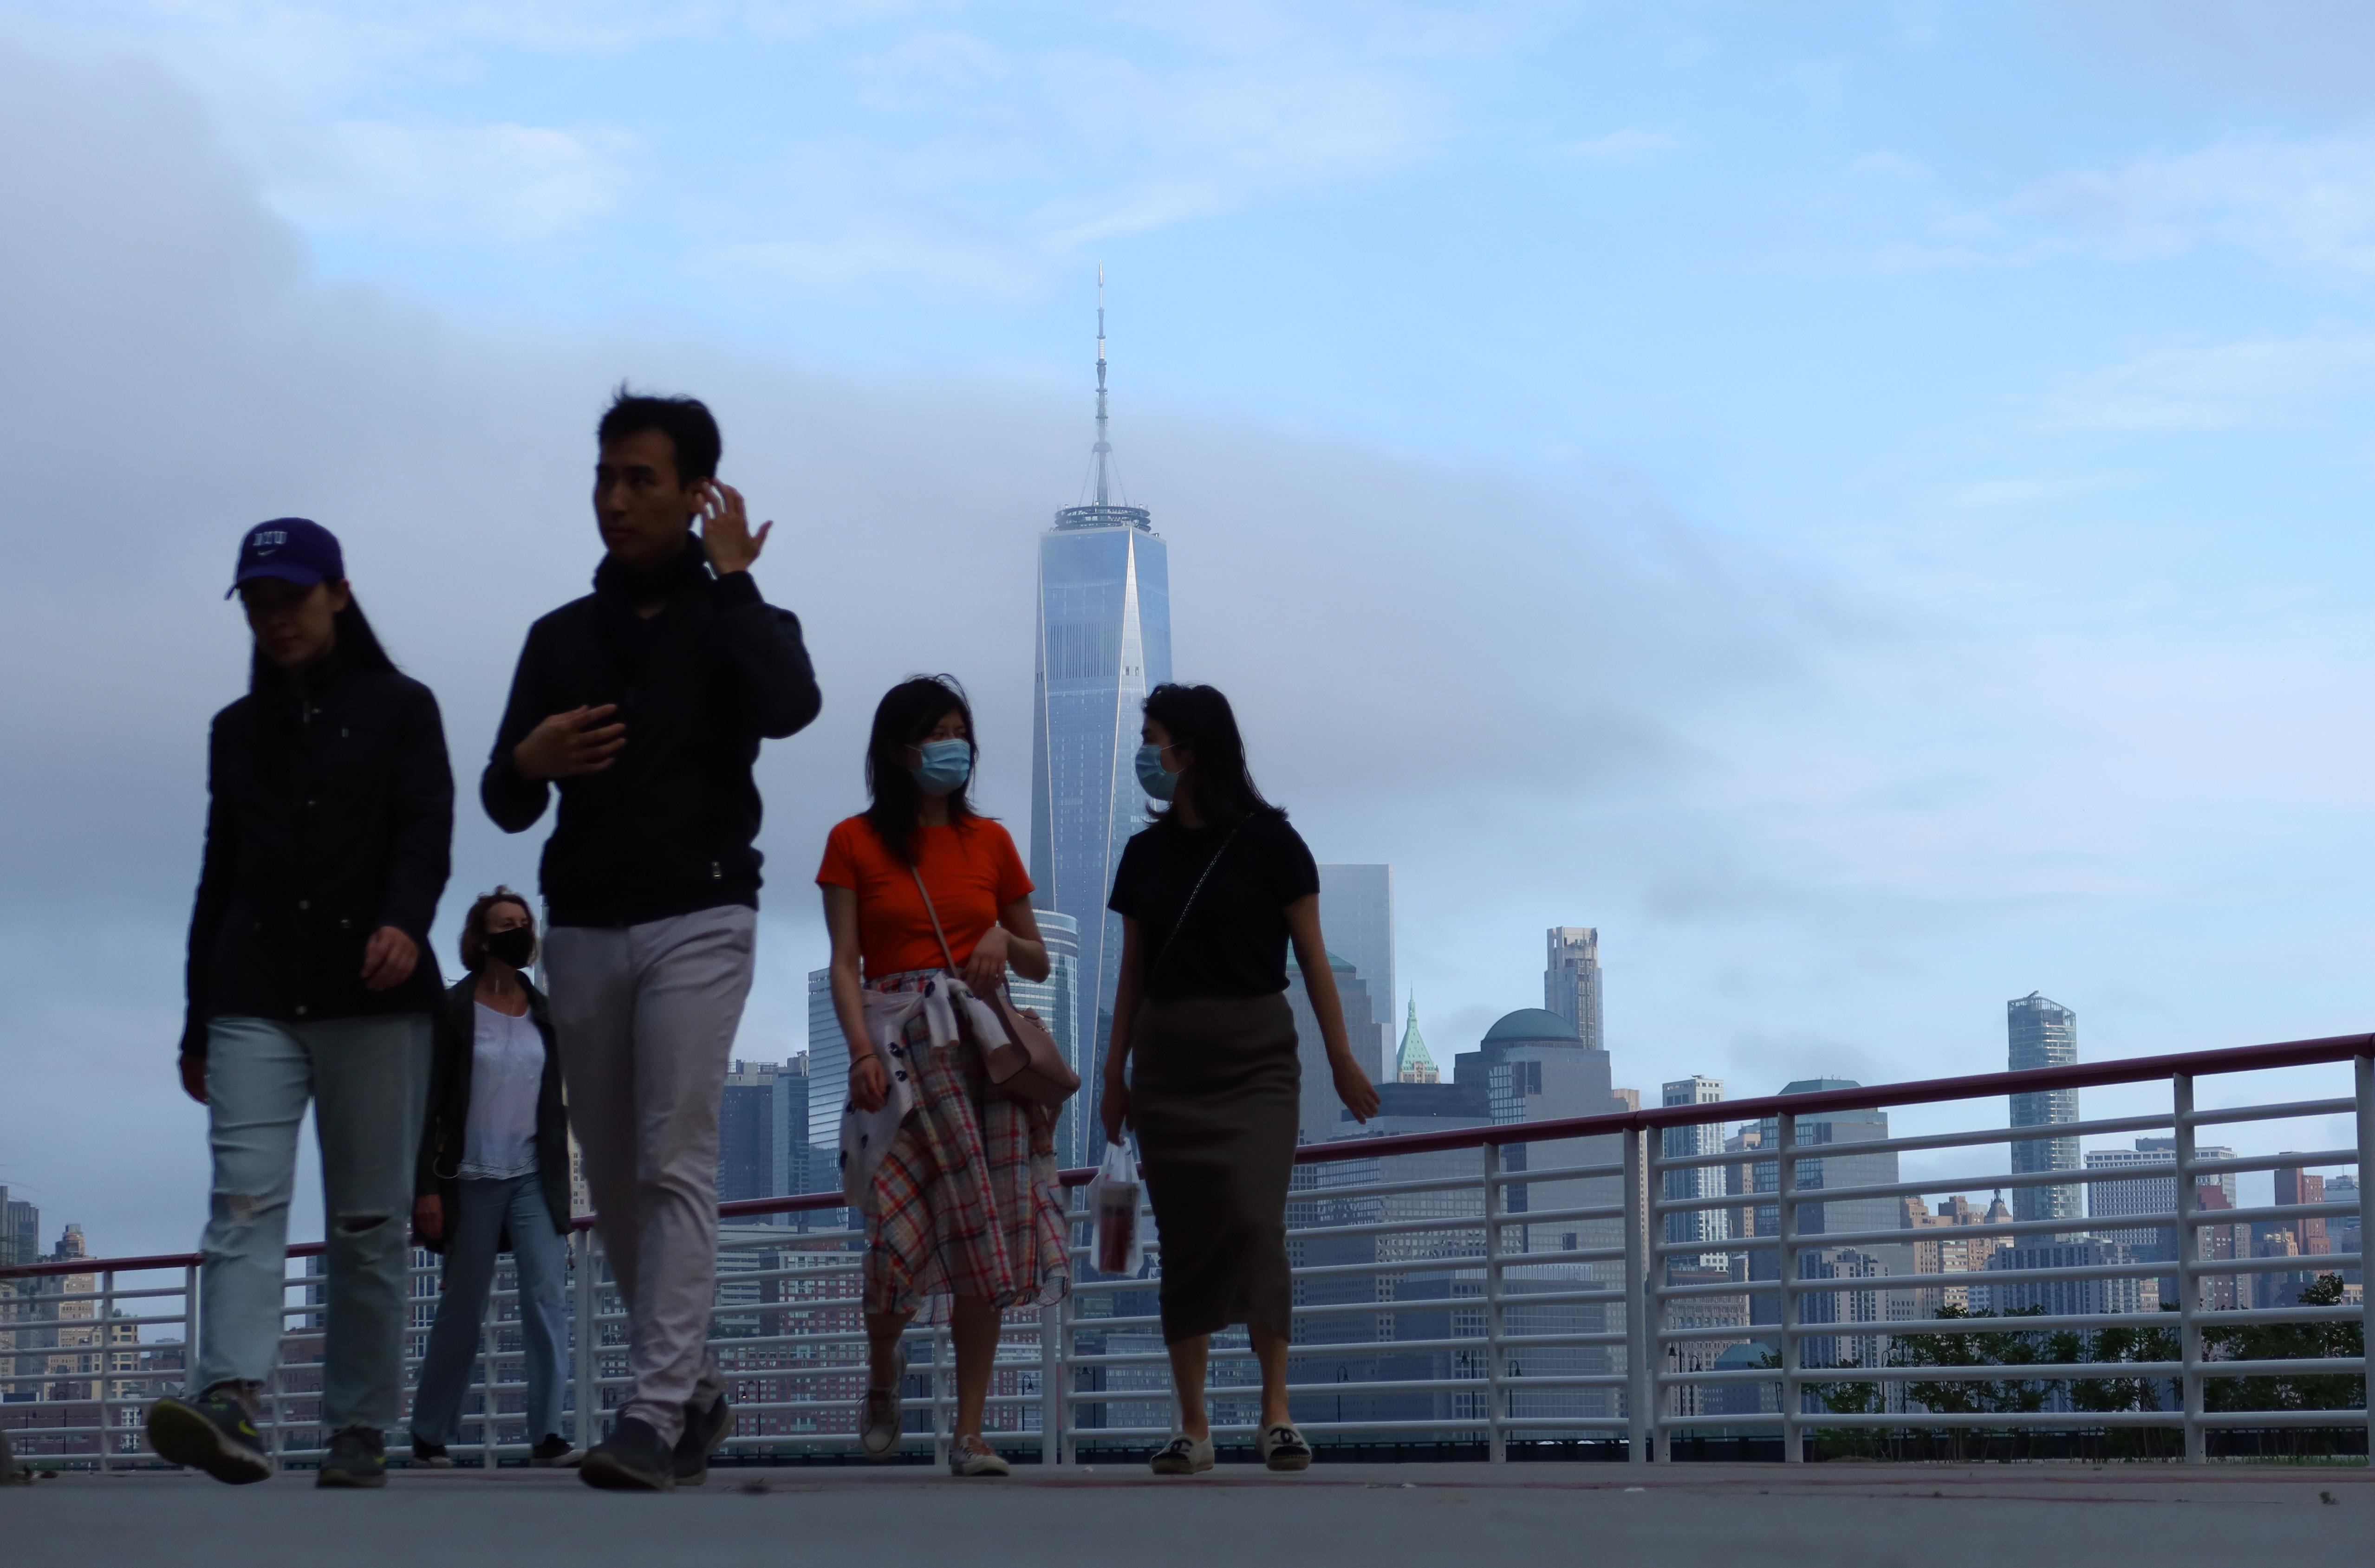 New York City targets June 8 reopening date, marking a milestone